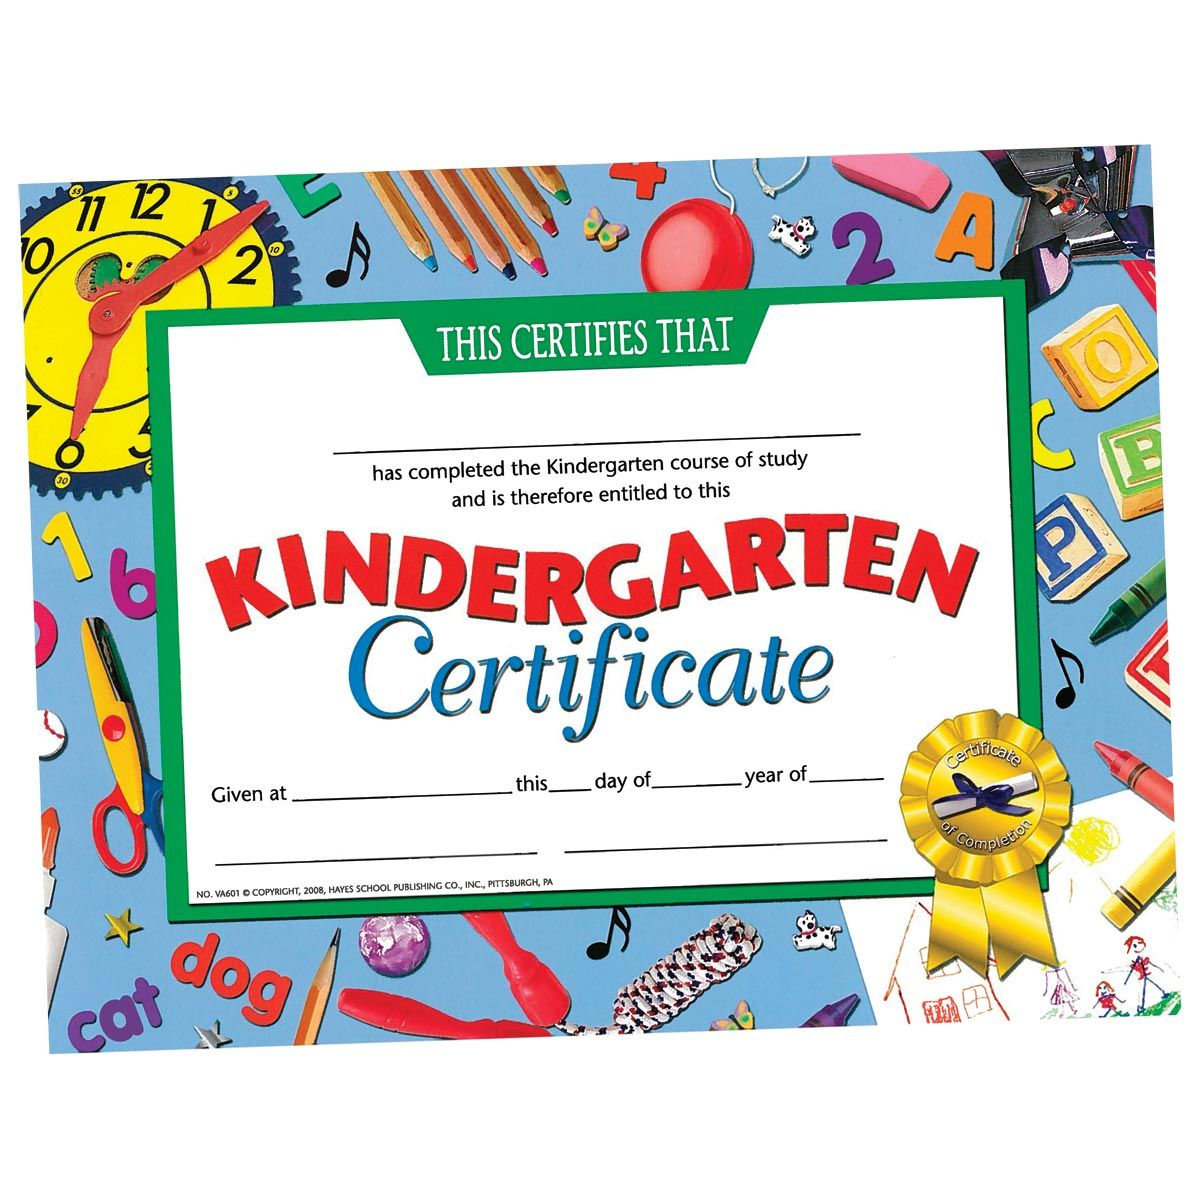 Kindergarten Awards Certificates: Kindergarten Certificate With Clocks Border